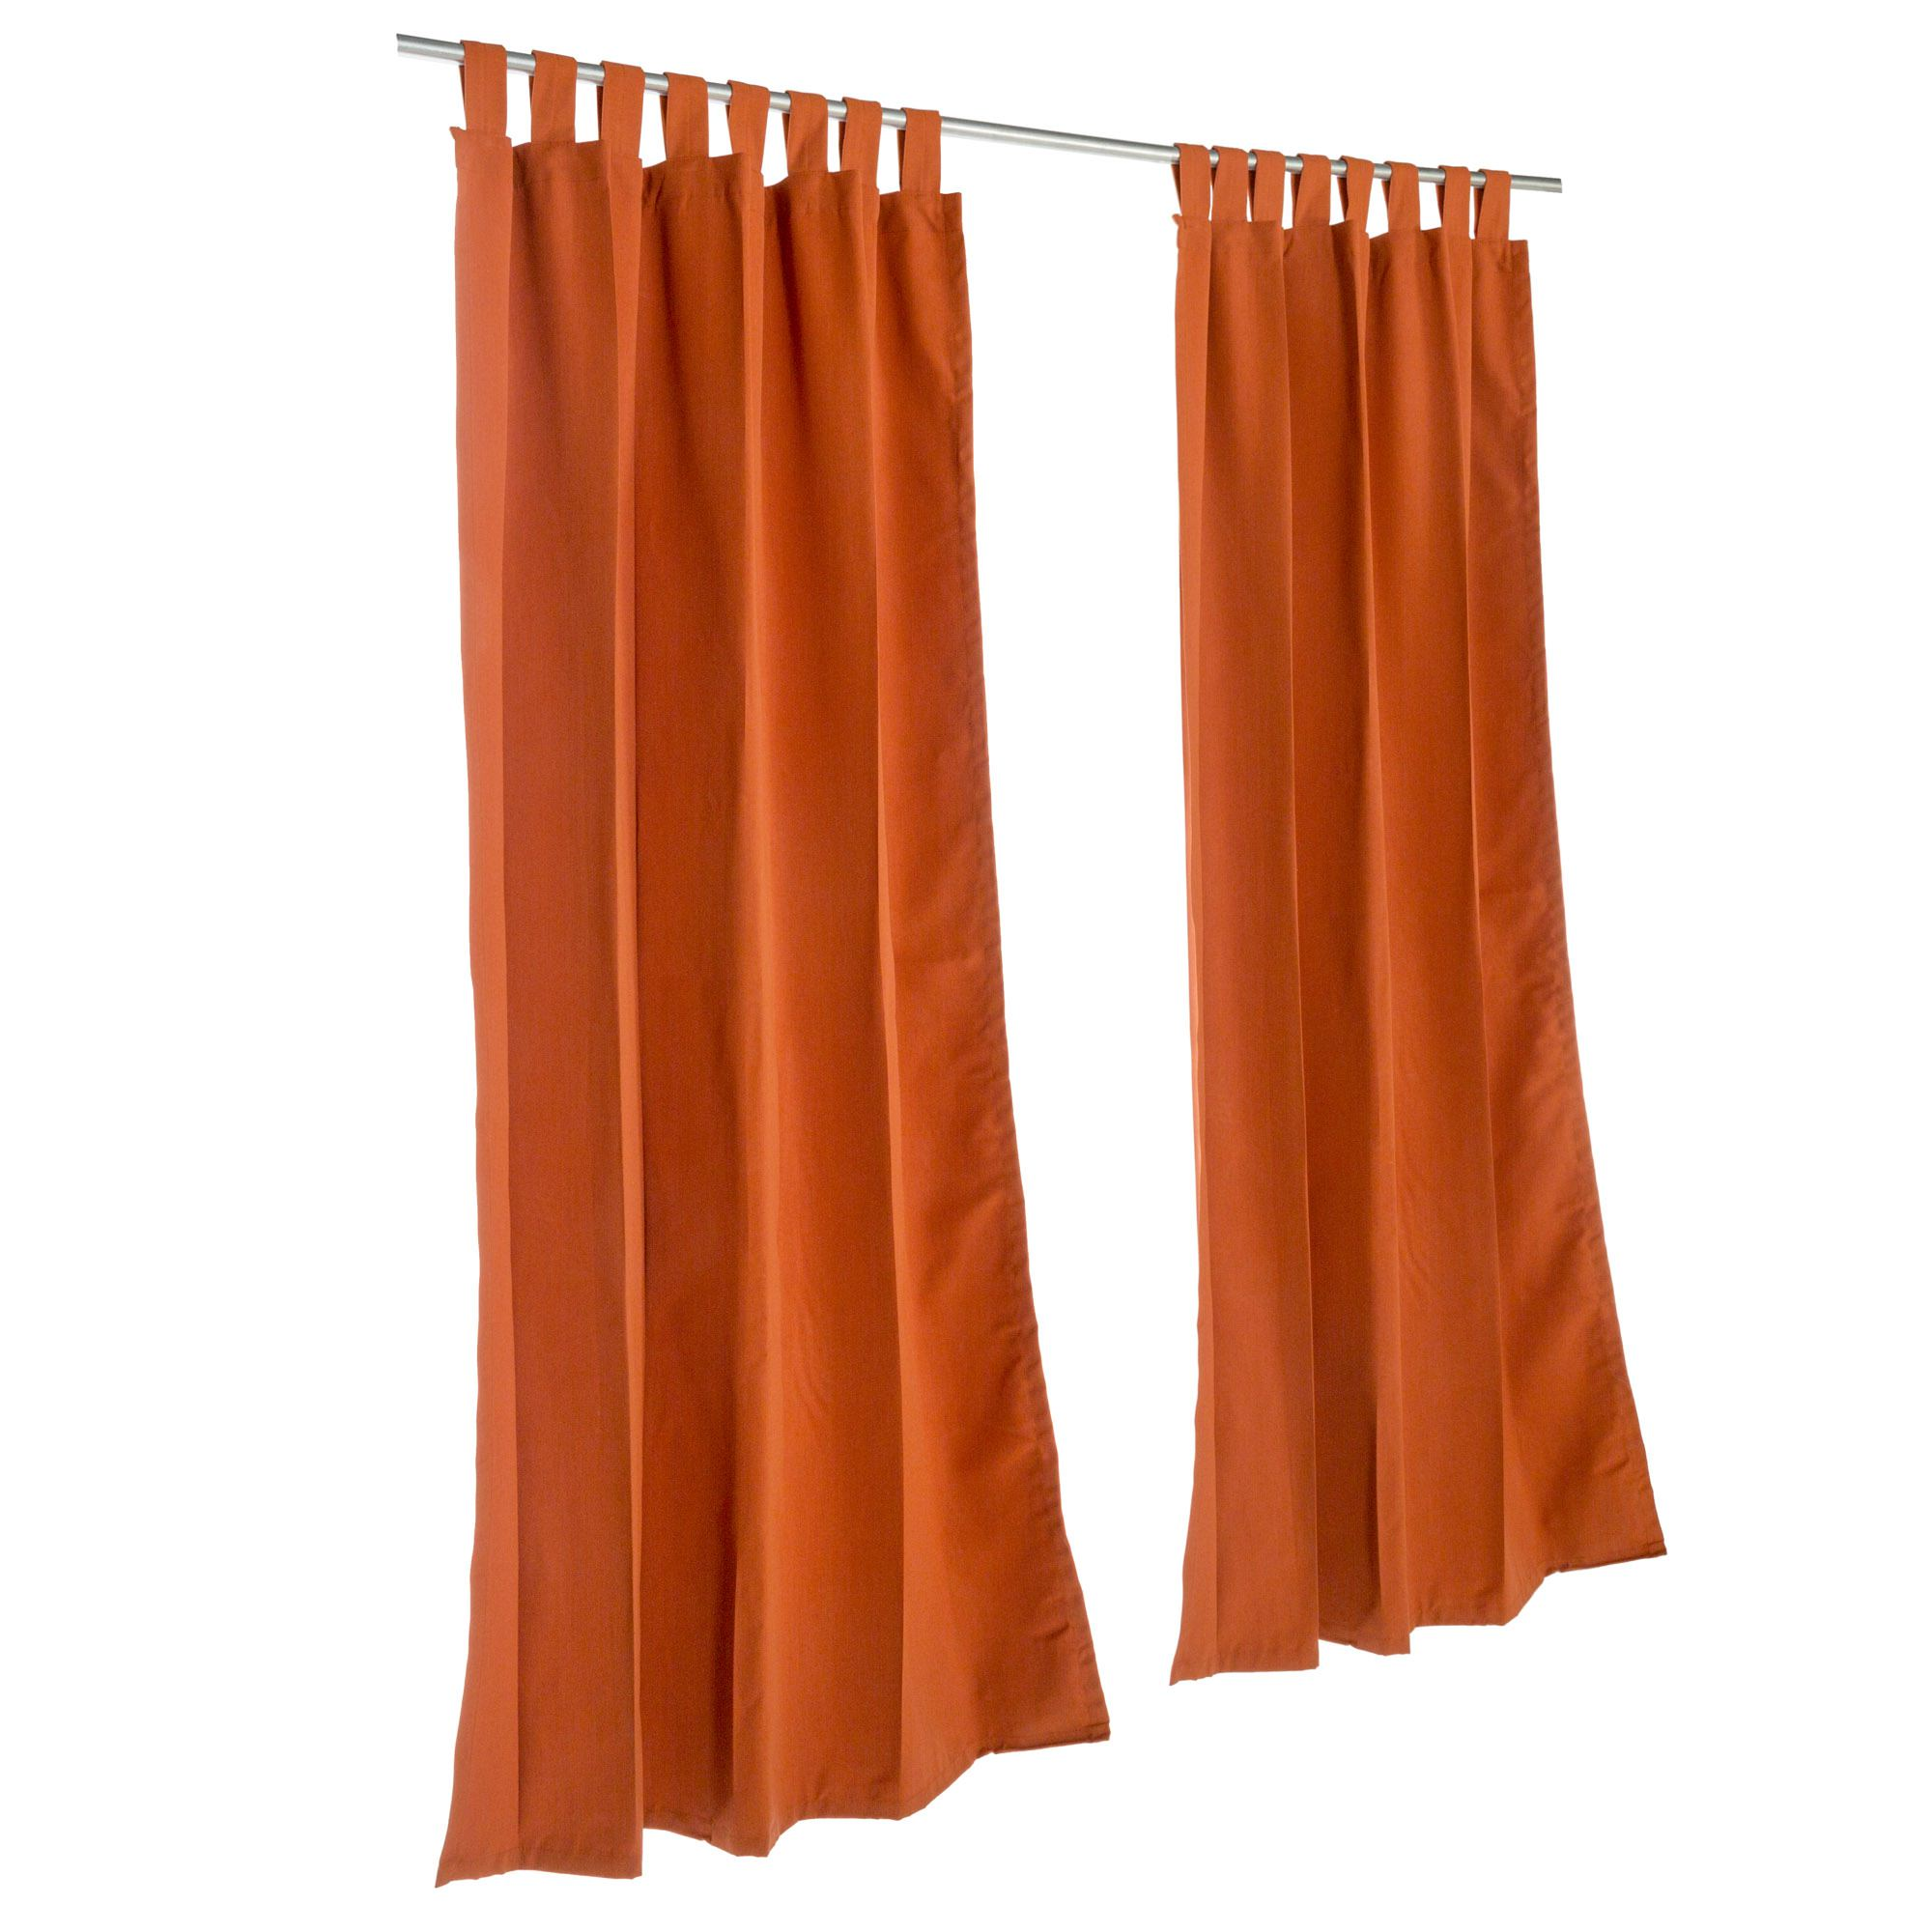 tag sheer cheap and tags curtains size curtain impressive walmart of blue silver design indoor outdoor patio full for indooroutdoor sunbrella cayman unbelievable parasol picture